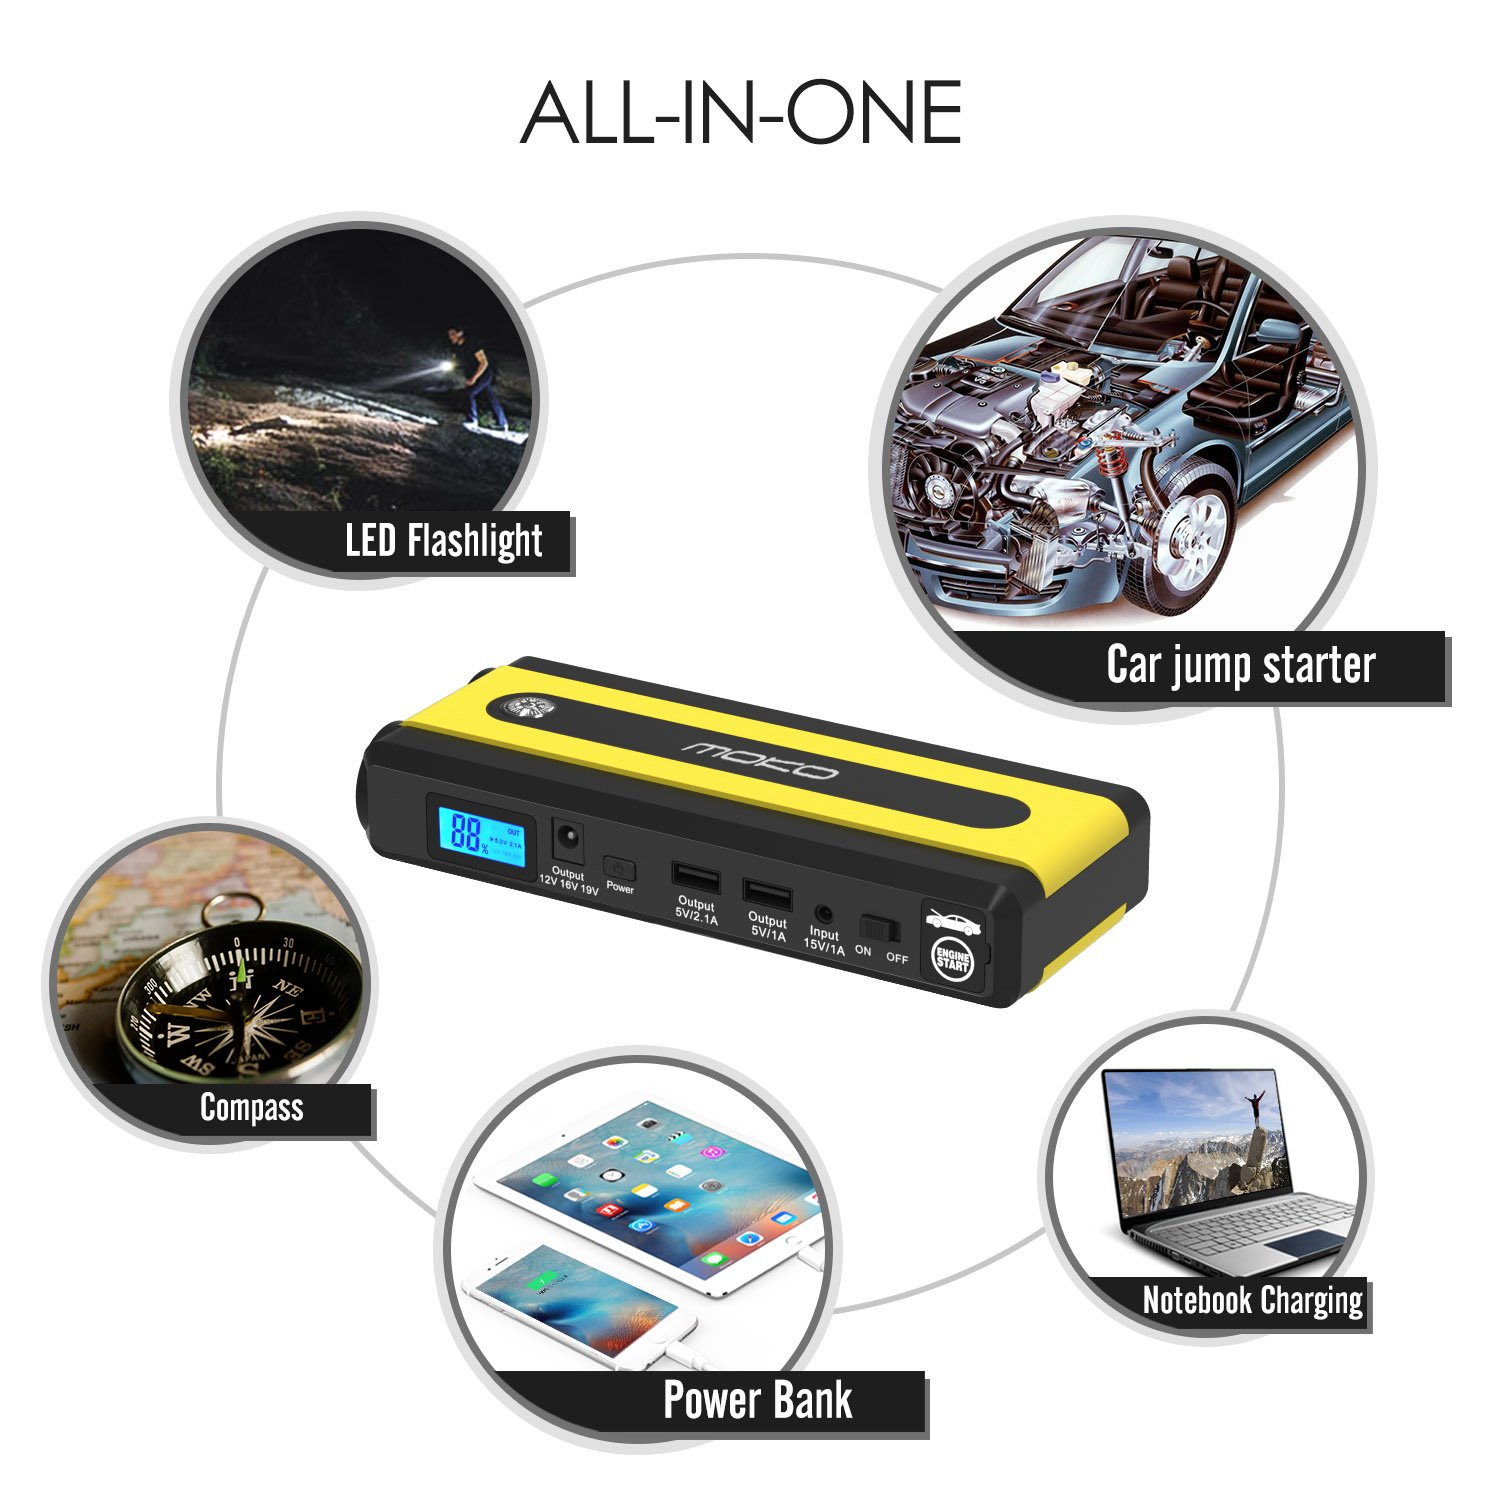 MoKo Portable Power Bank 500A Peak 13600mAh Emergency External Battery Pack Booster Charger with Smart Cable Clamp Compass LED Flashlight for 12V Autos Multi-function Car Jump Starter 2 USB Ports